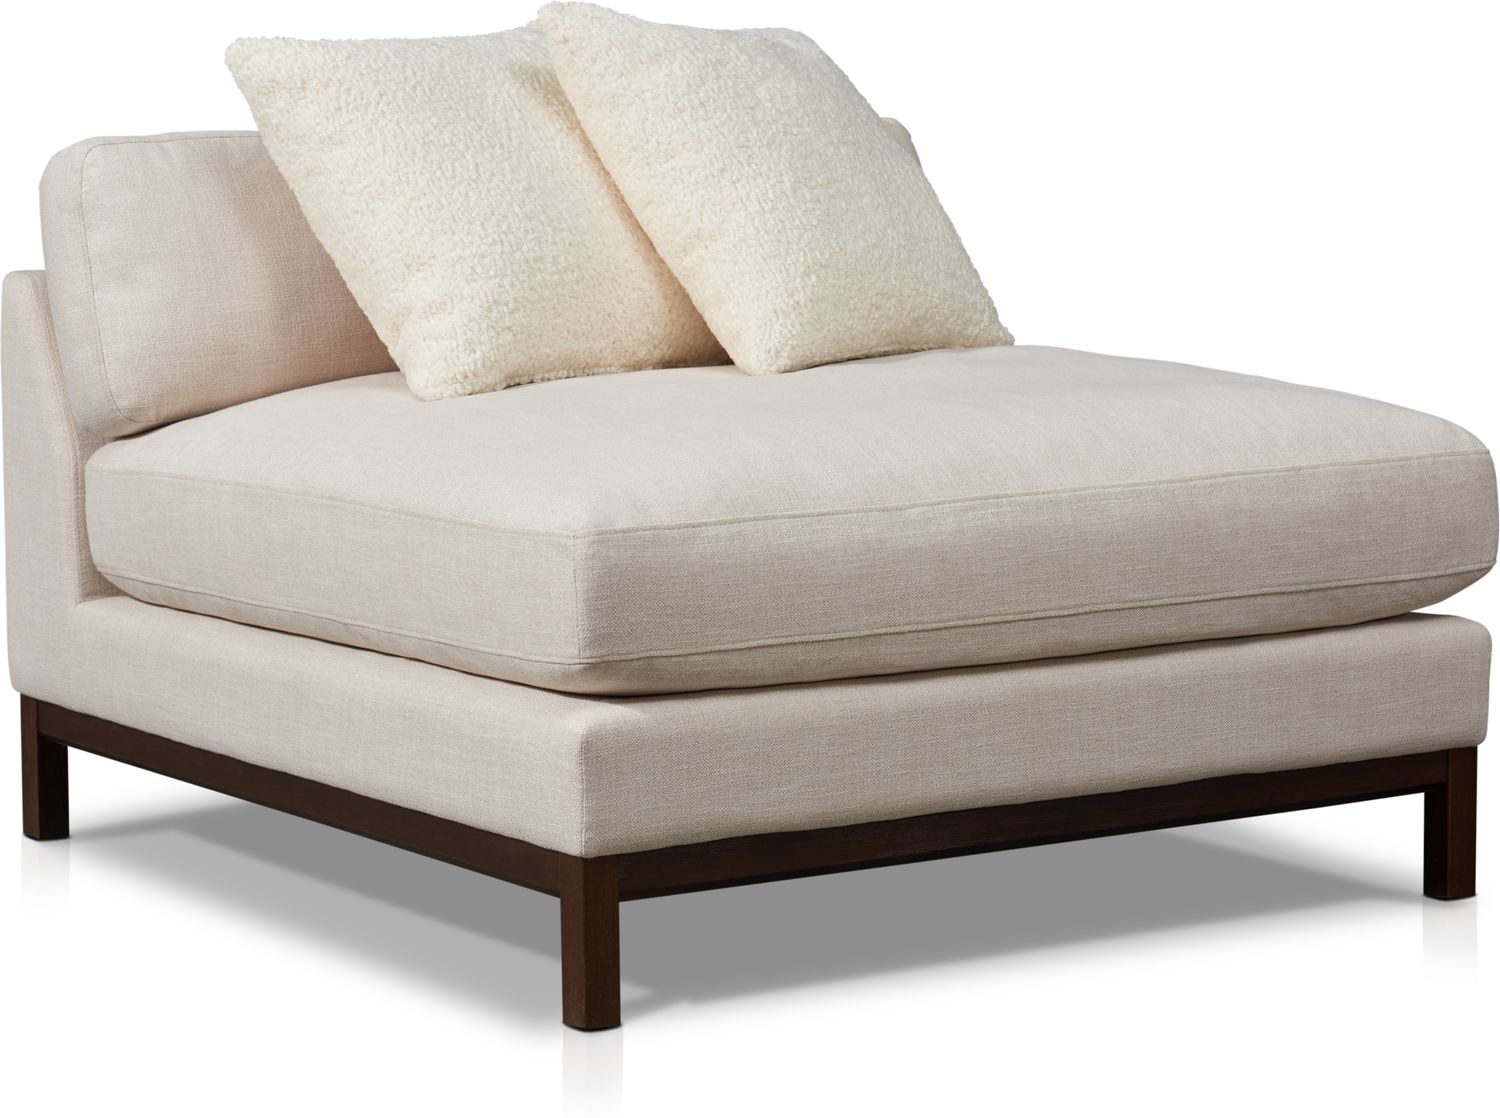 Living Room Furniture - Big Sur Armless Chair